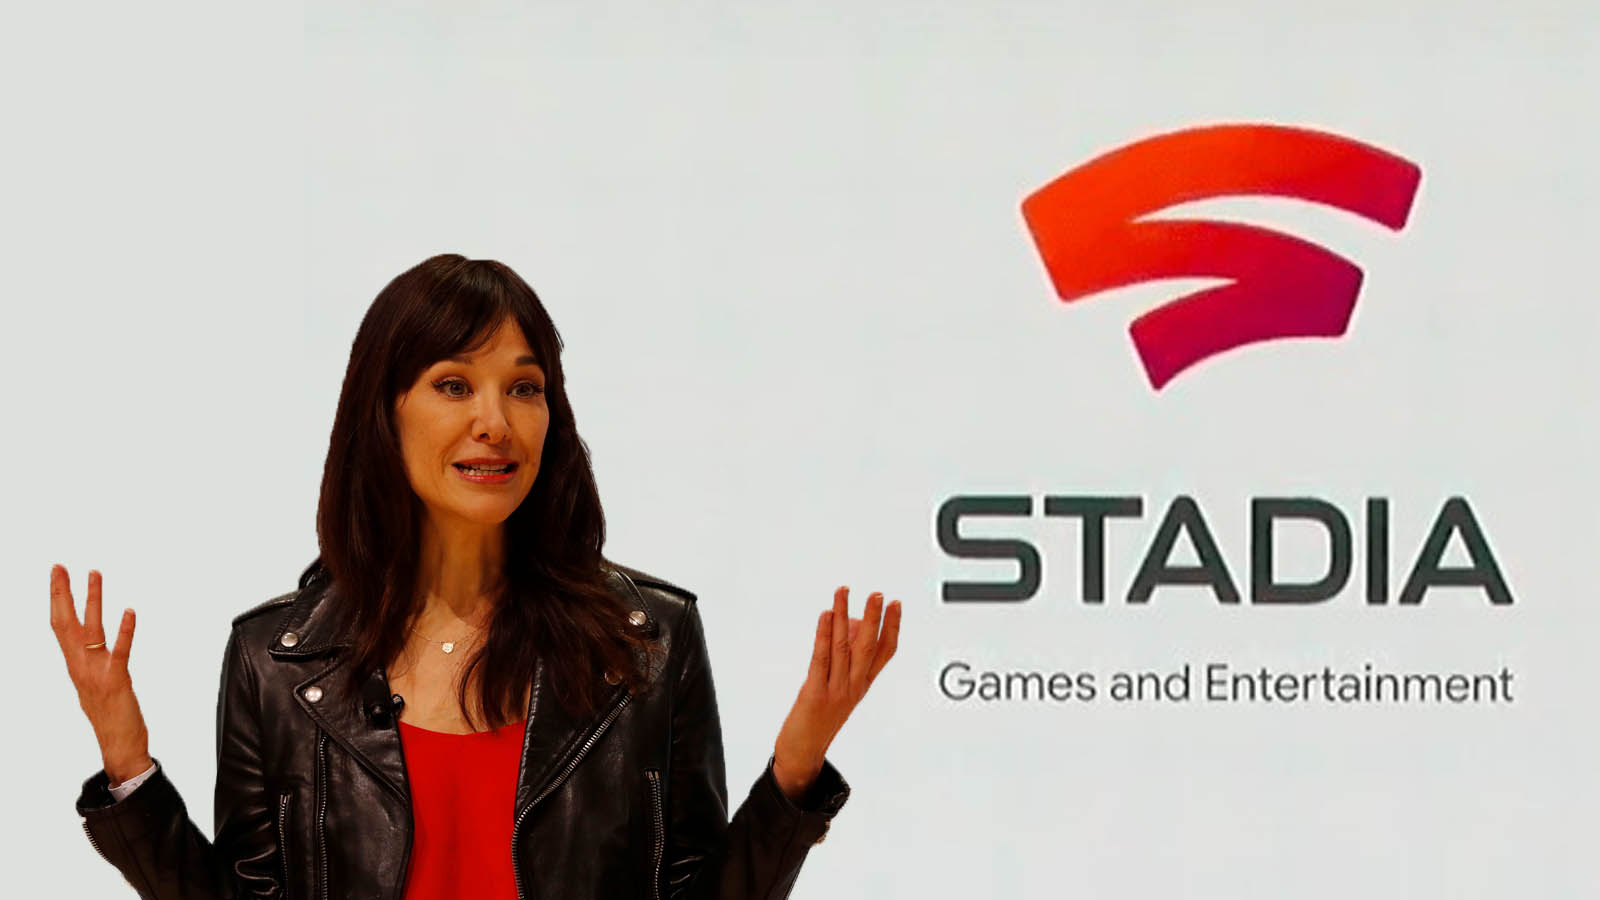 'Stadia Games & Entertainment' is shutting down, but Google Stadia is alive and well